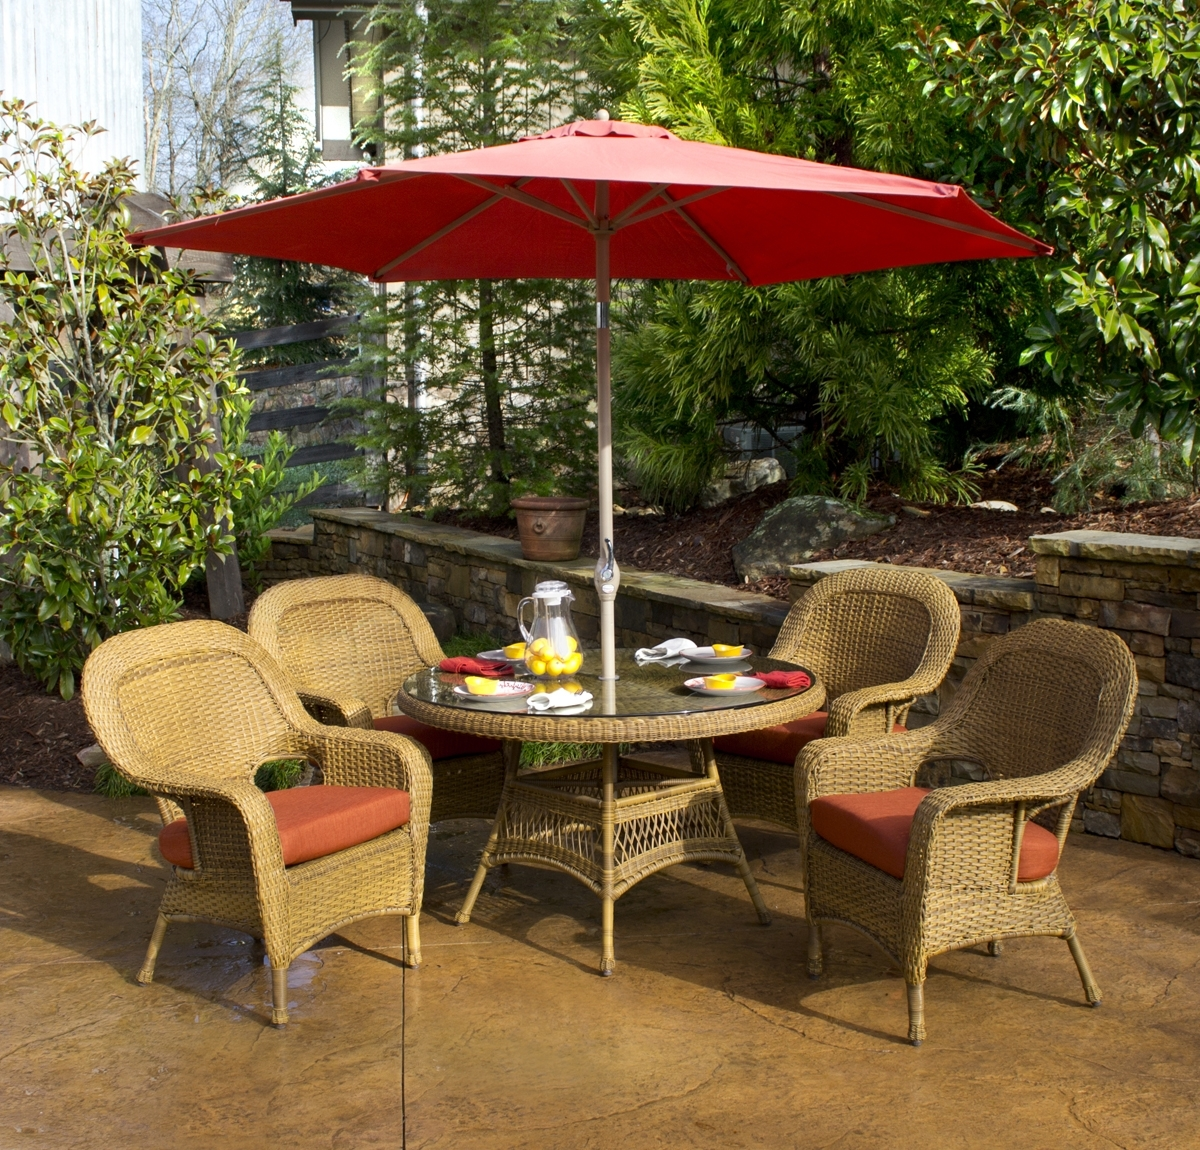 Cute Umbrella For Patio Table : Life On The Move – Umbrella For With Favorite Extended Patio Umbrellas (View 3 of 20)